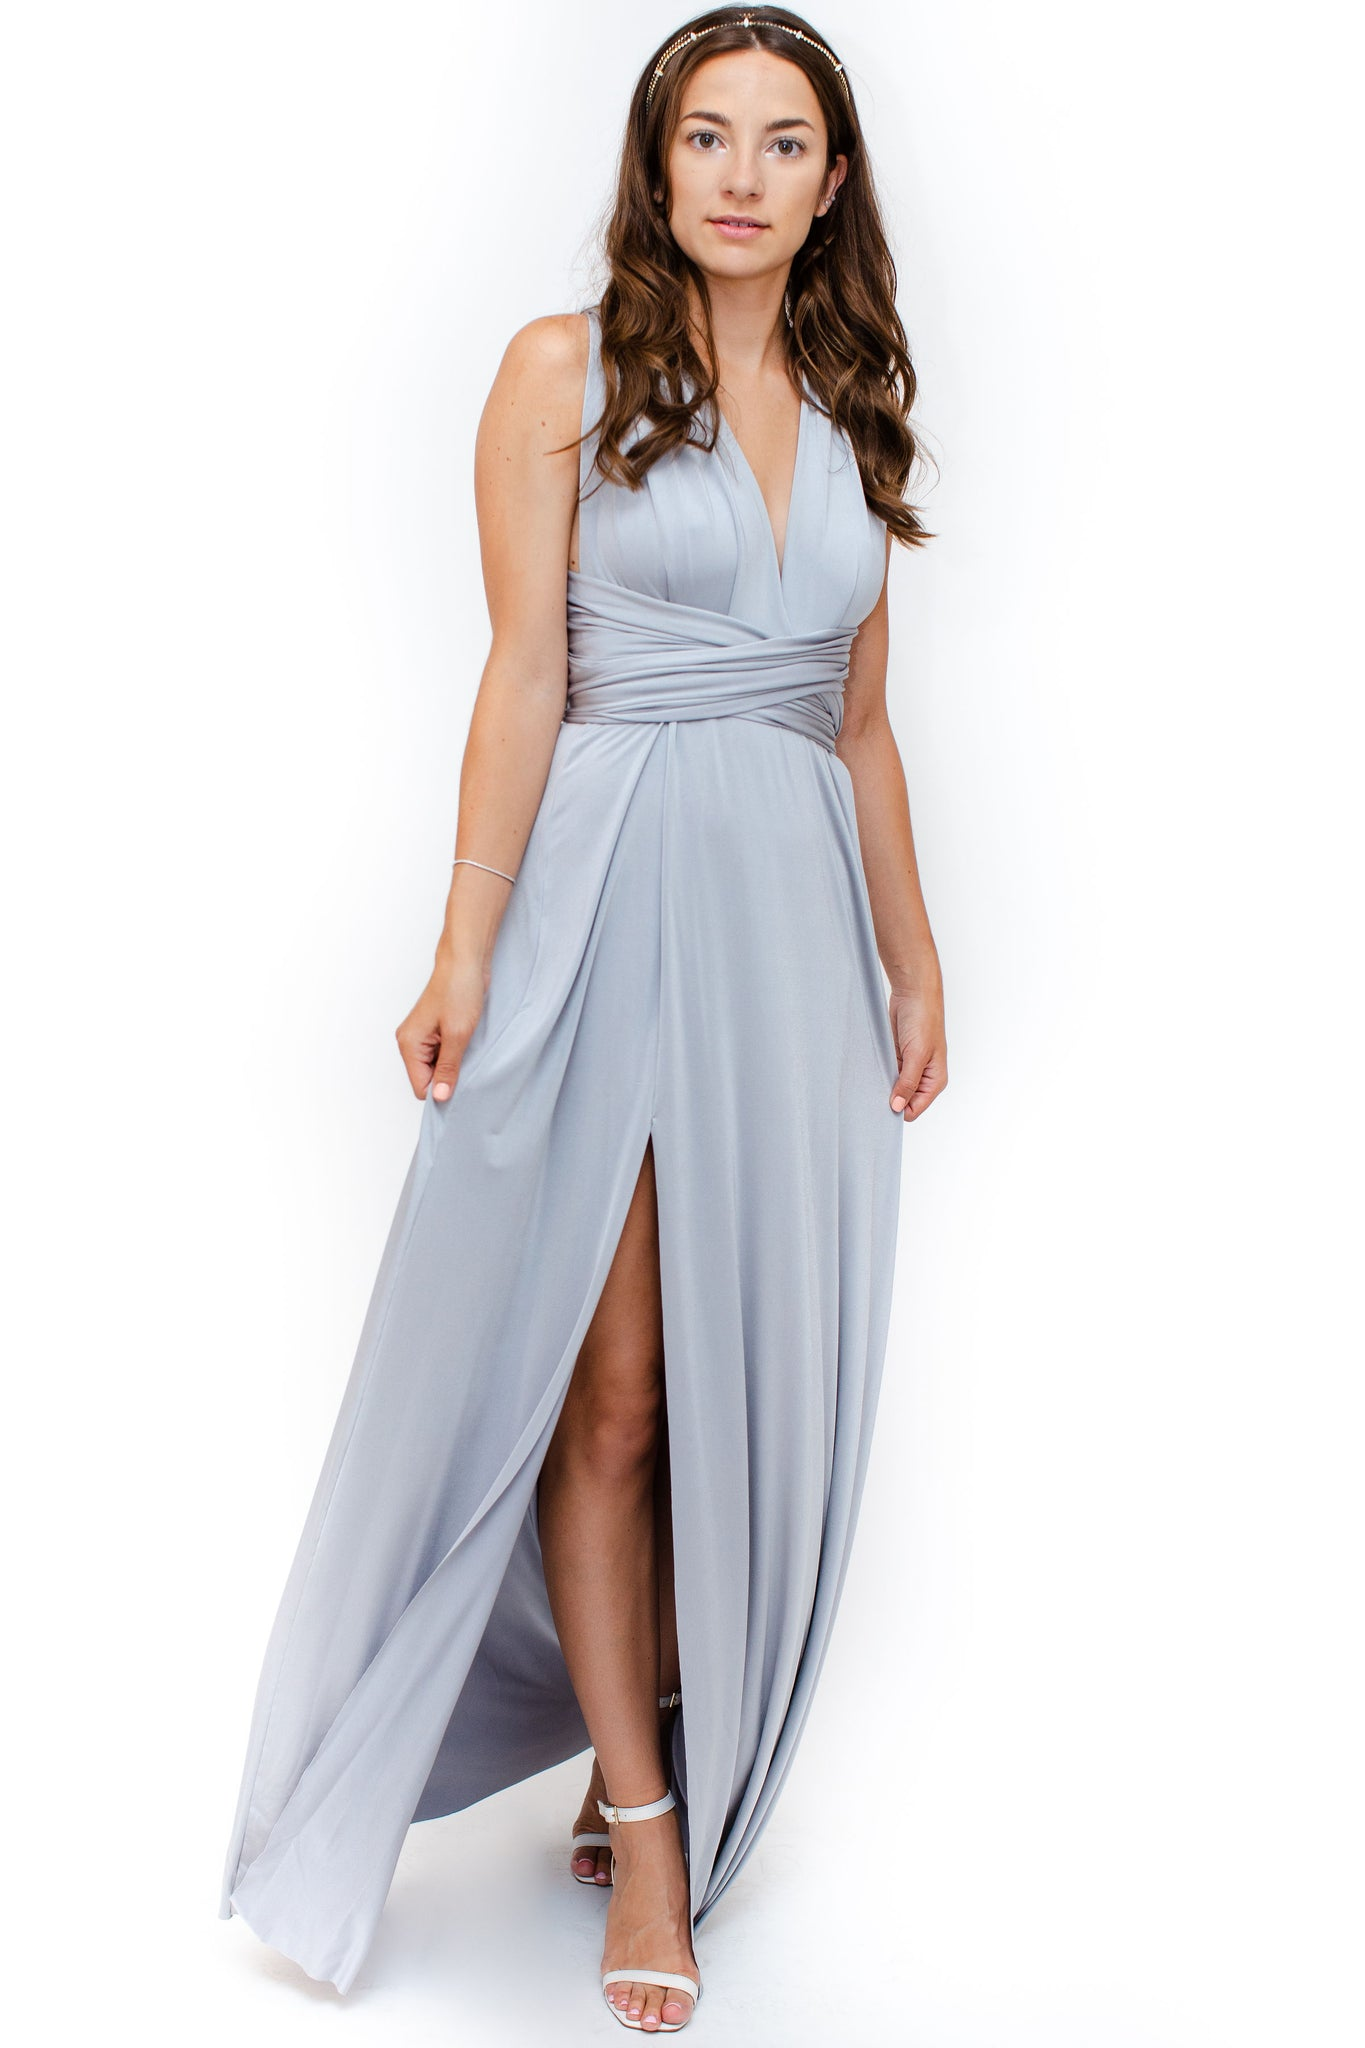 Front Image: Silver floor length dress, side slit, with convertible top. Brand Two Birds